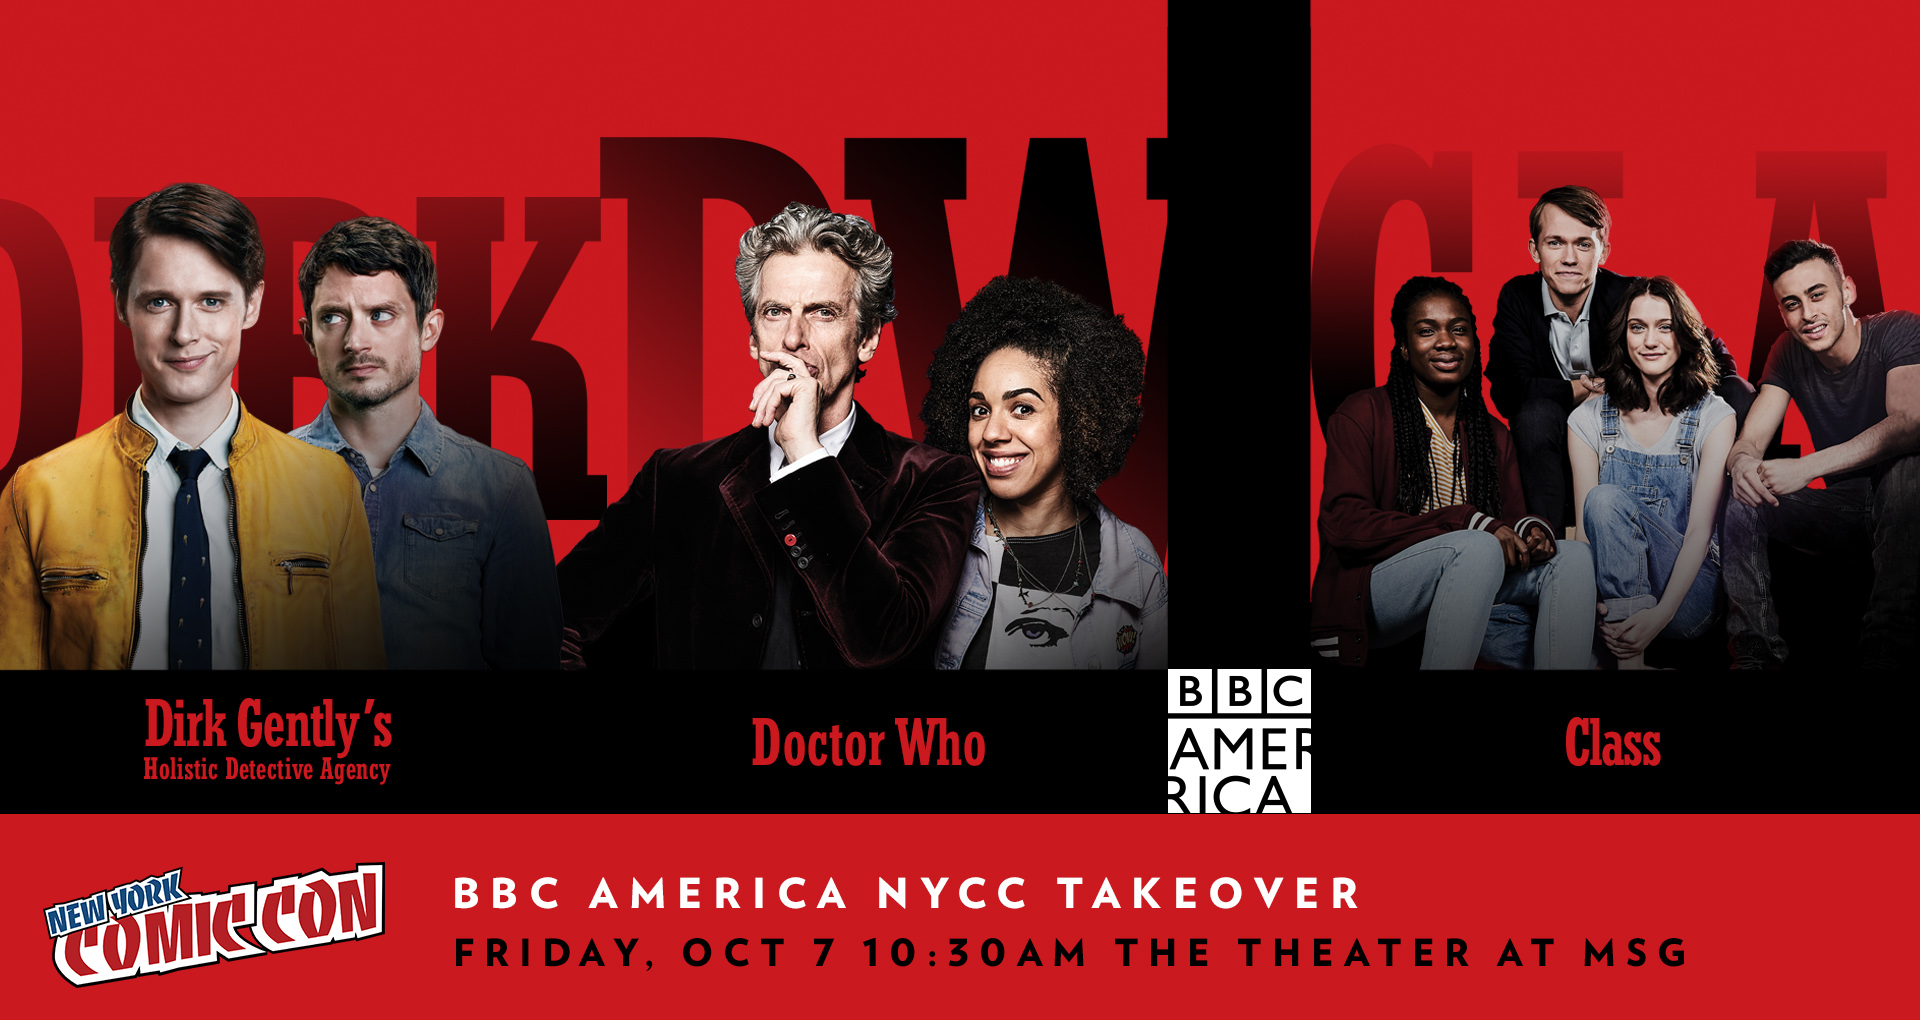 nycc16_bbca_header_digital_1920x1020-1